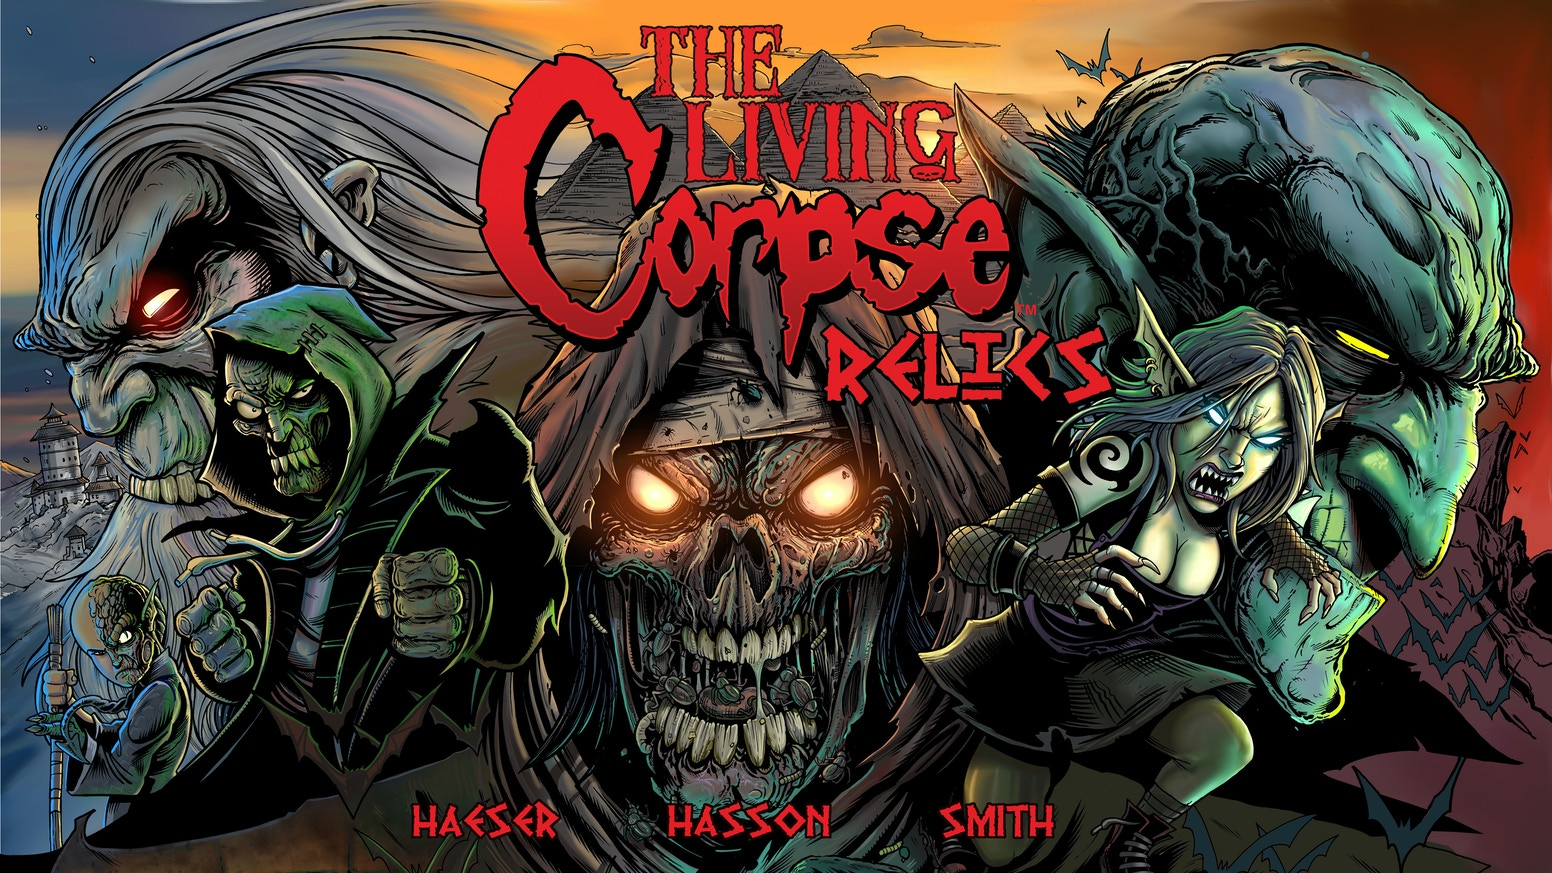 The Living Corpse: Relics a 160+ page original graphic novel by Ken Haeser, Buz Hasson and Blair Smith.